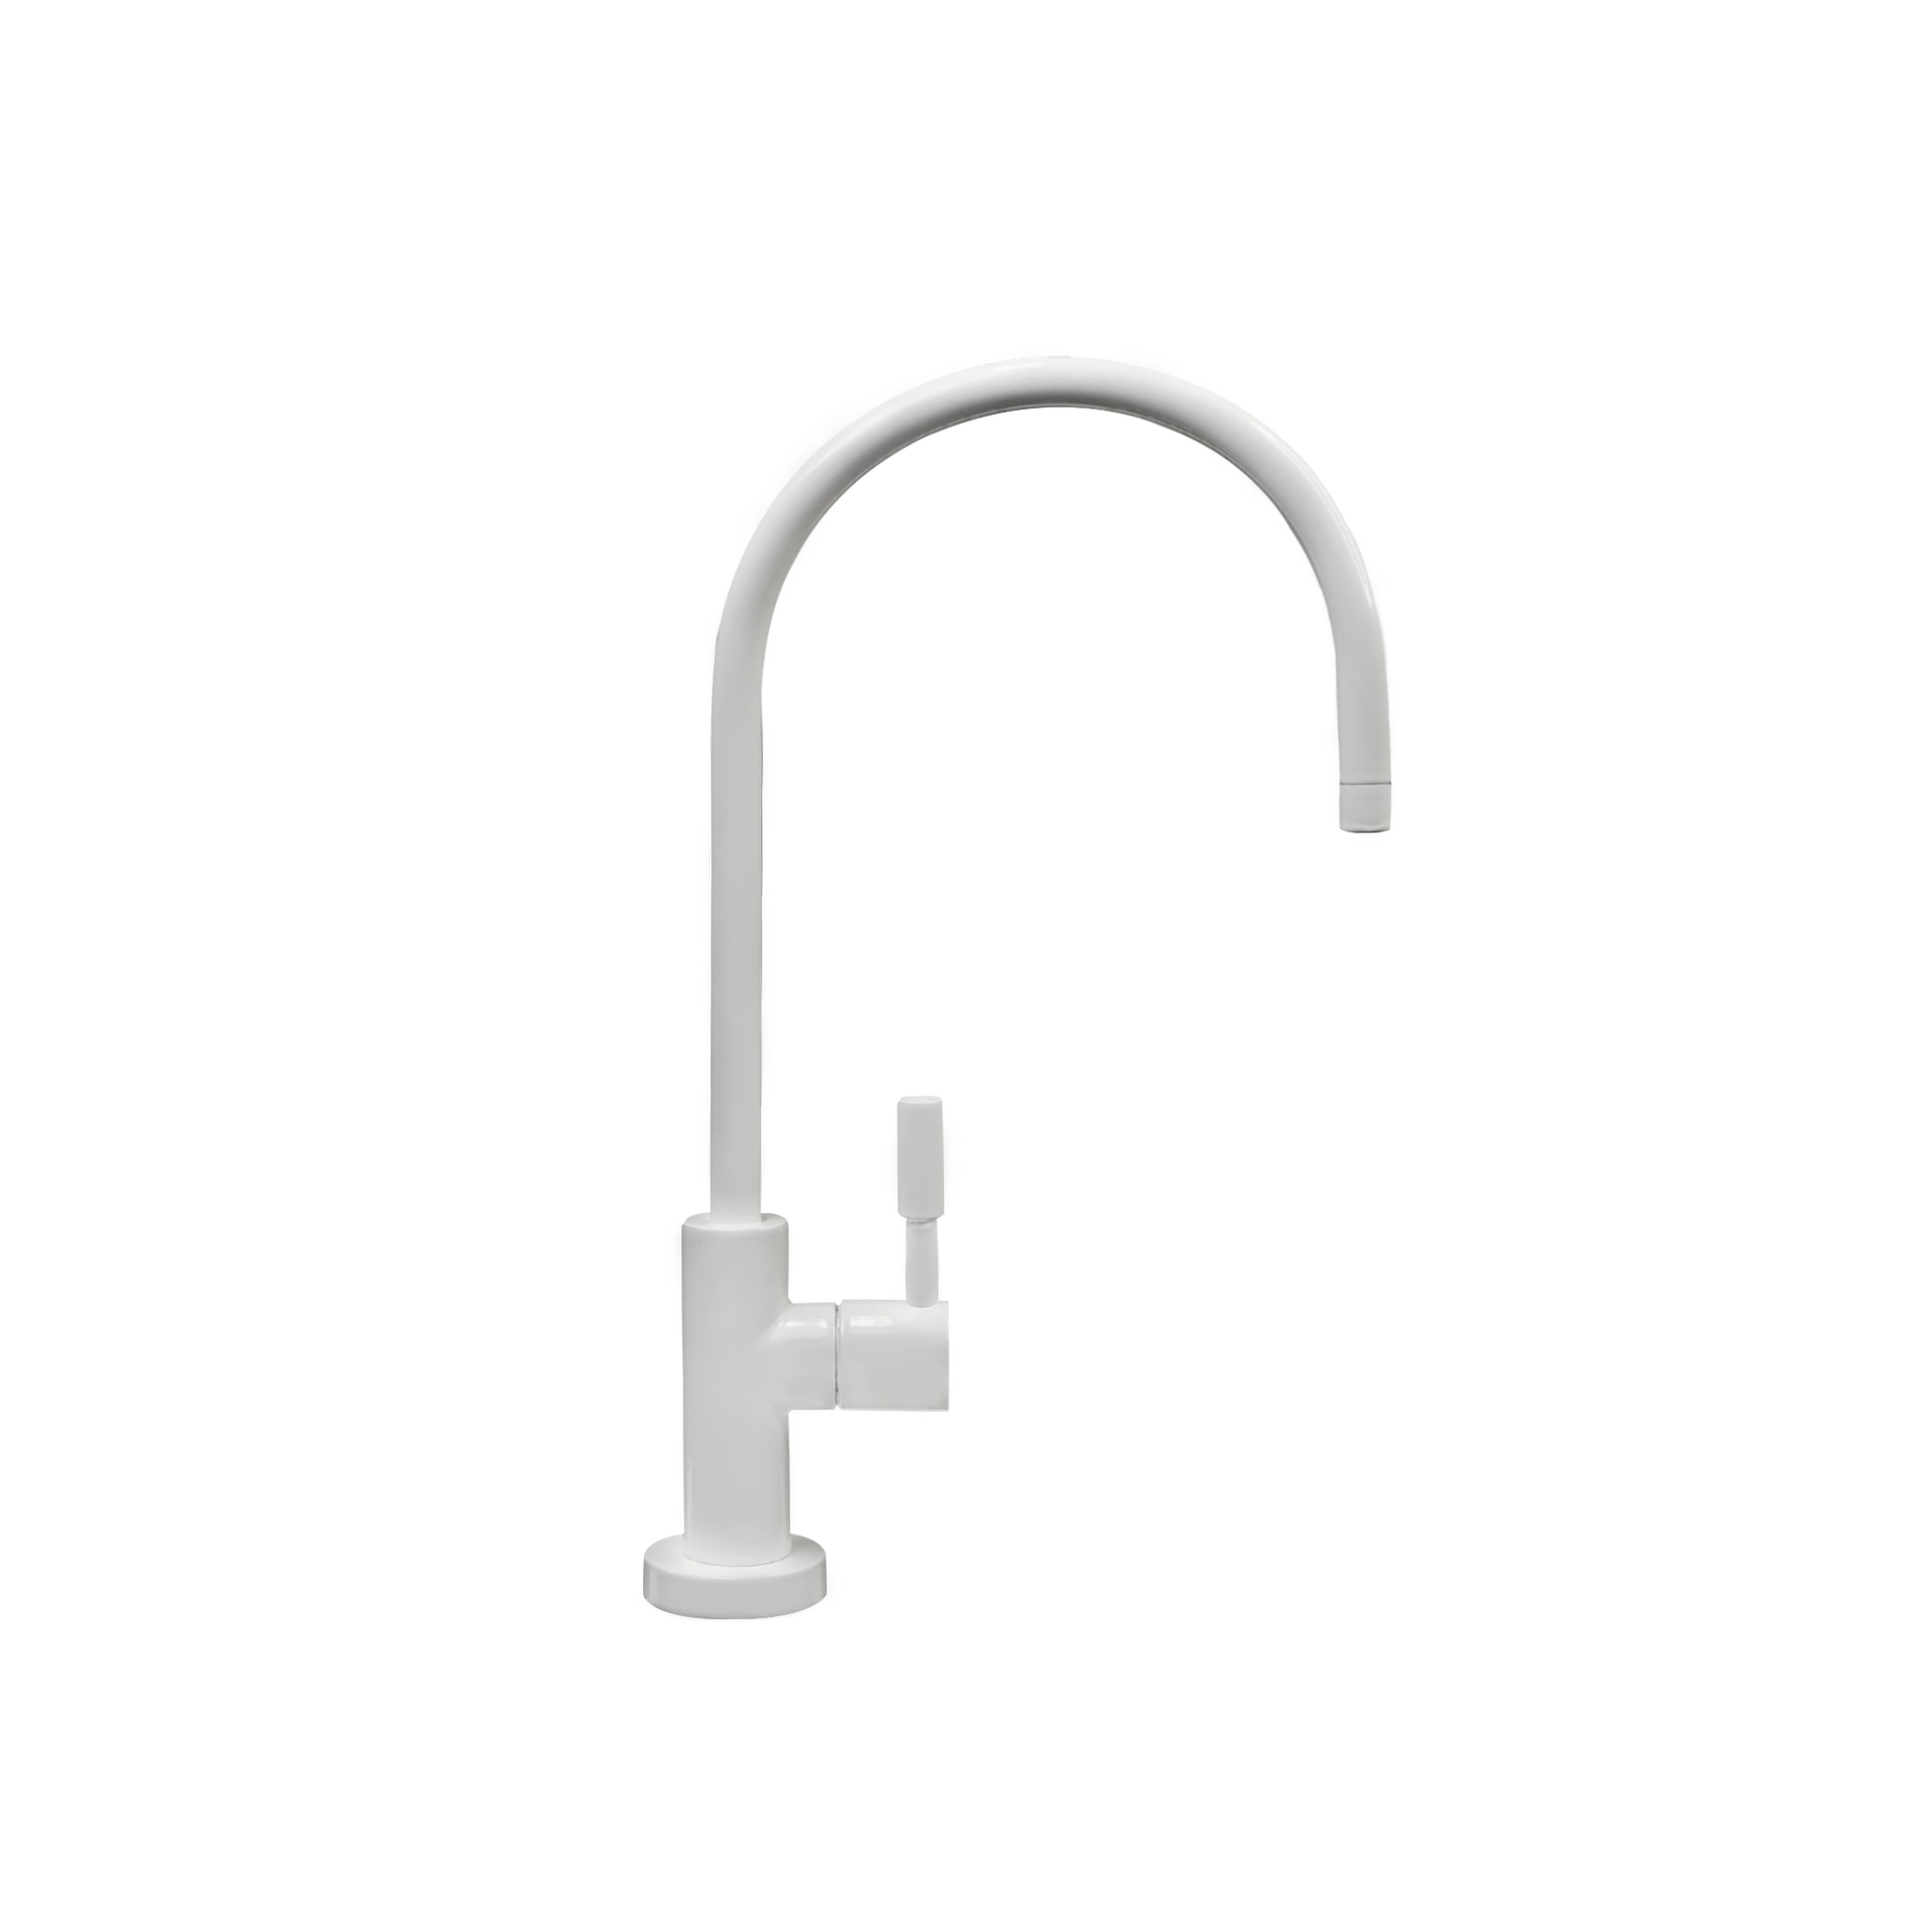 White-Manual-Faucet.png